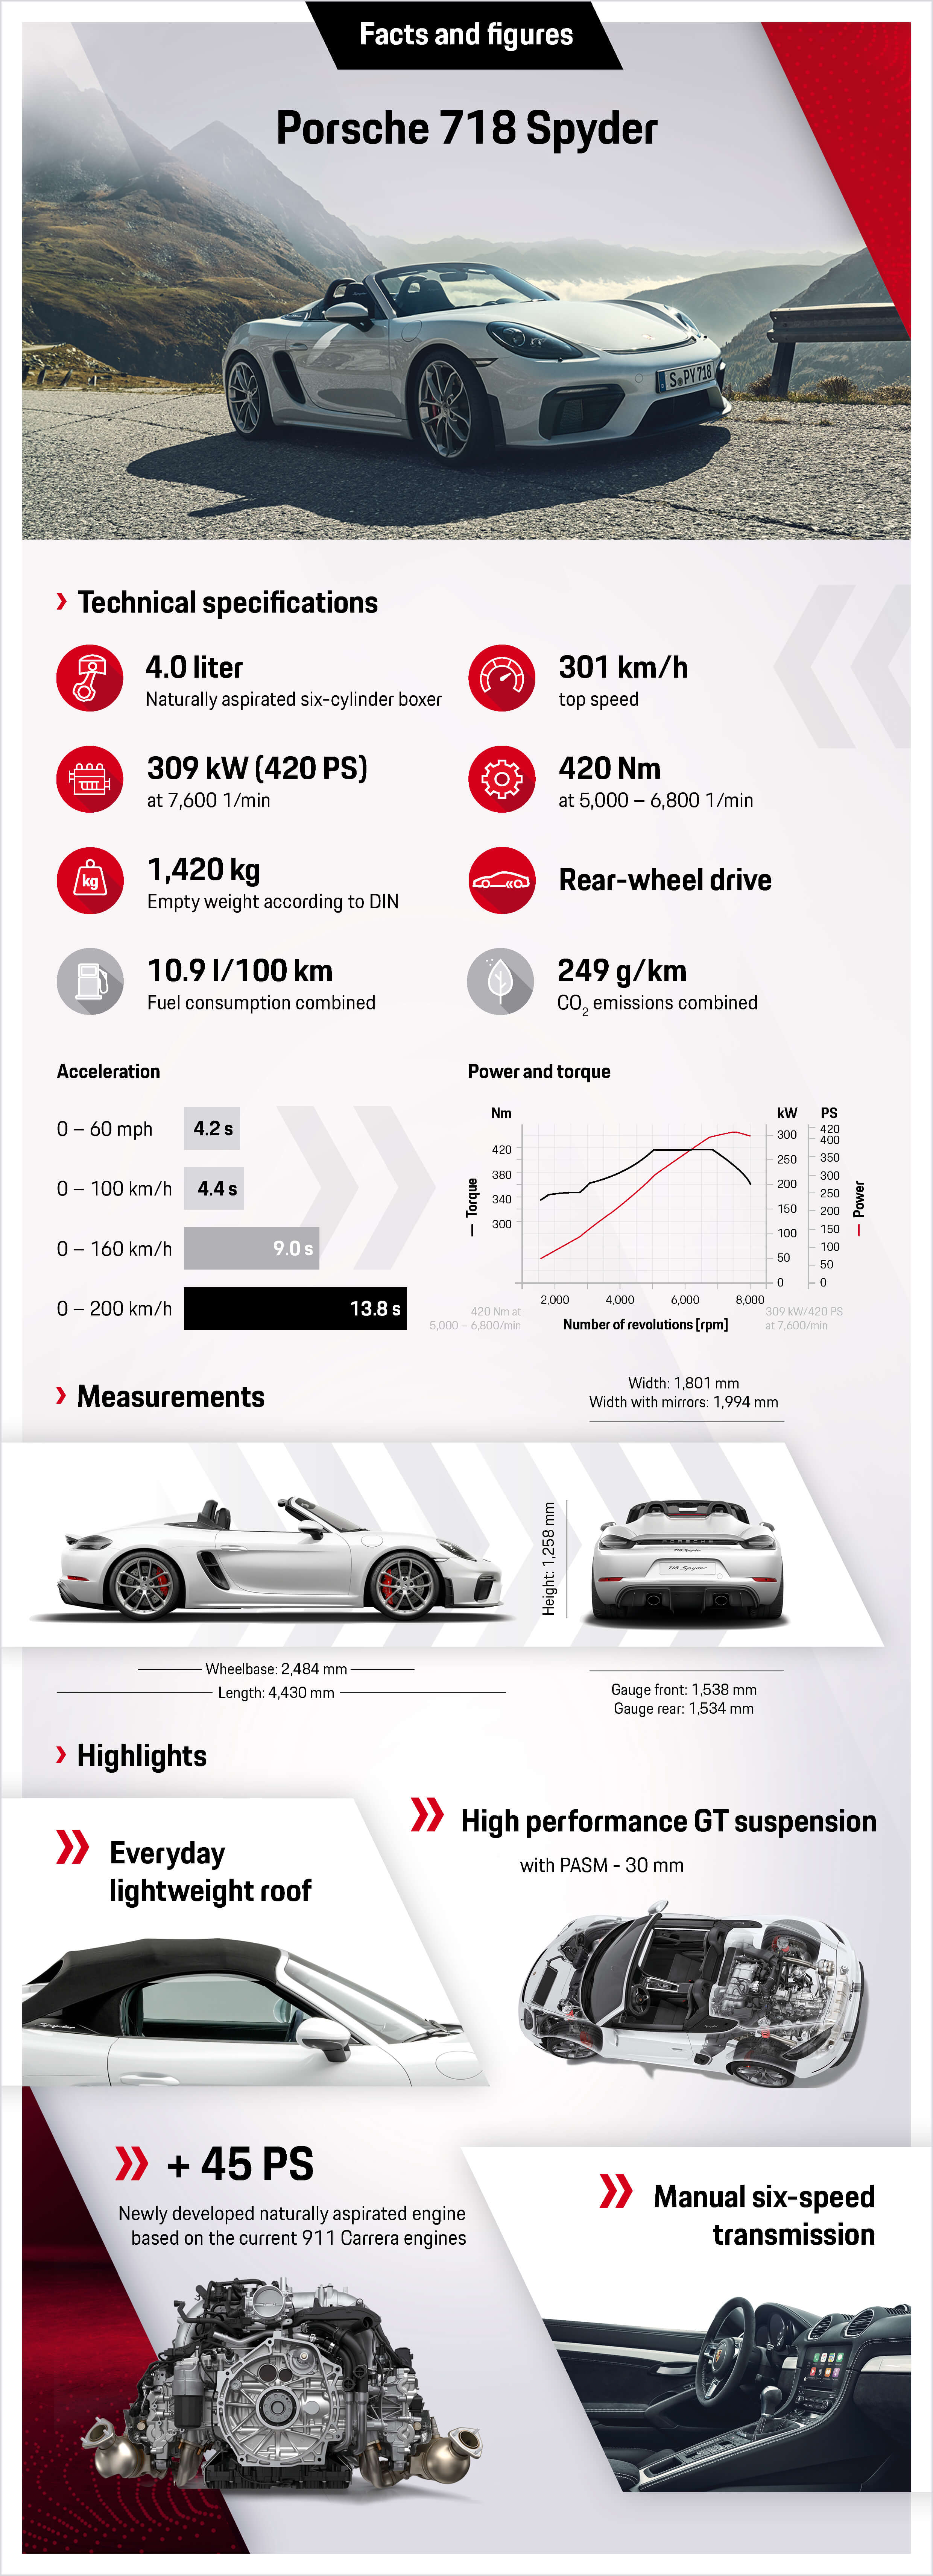 2019 Porsche 718 Boxster Spyder facts and figures infographic